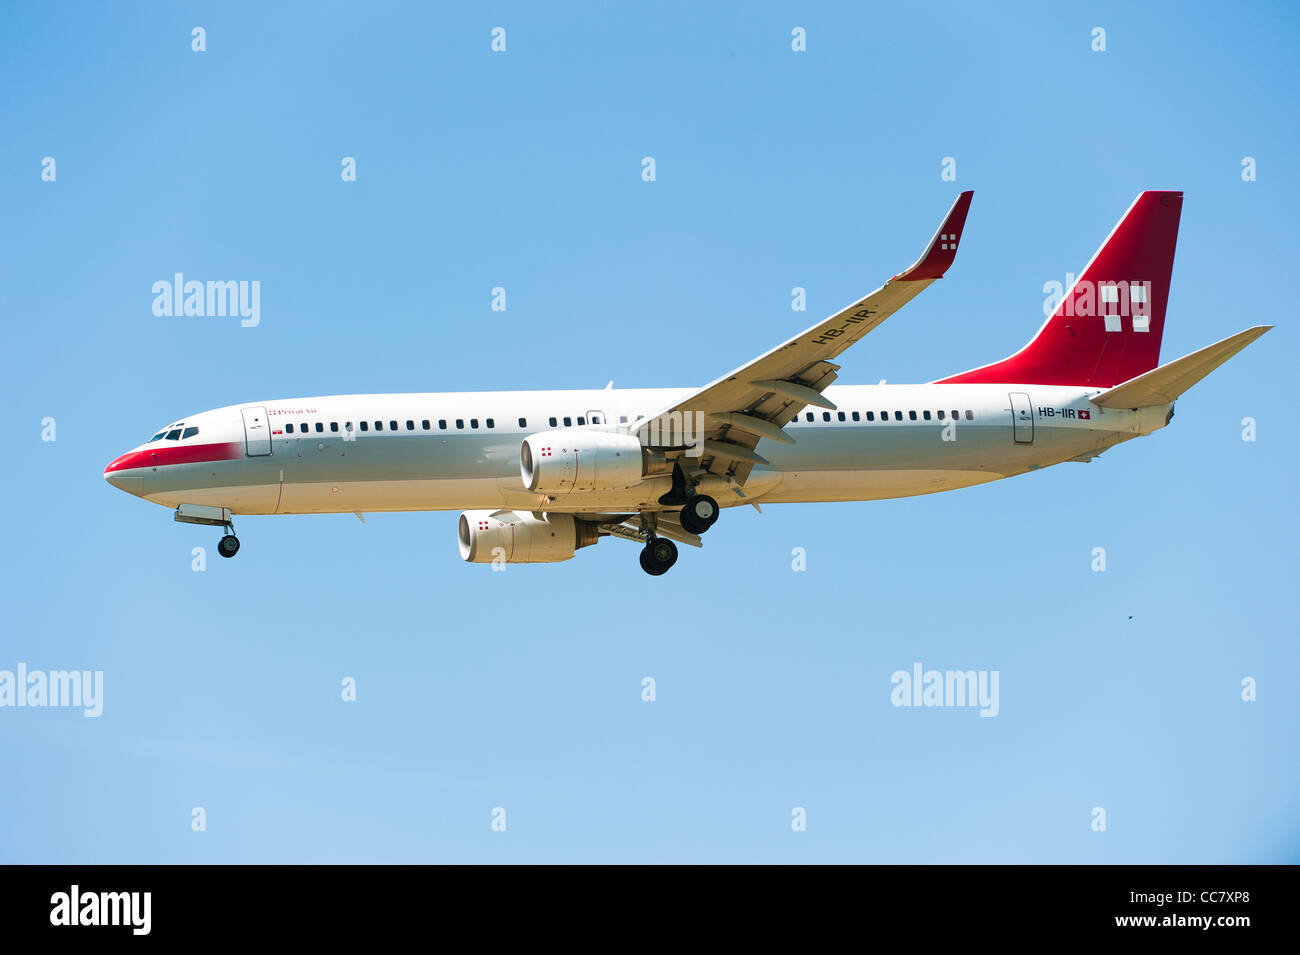 ZURICH, SWITZERLAND - MAI 24: Private Air (HB-IIR) airplane lands at Zuerich airport (Switzerland) Mai 24, 2010 - Stock Image